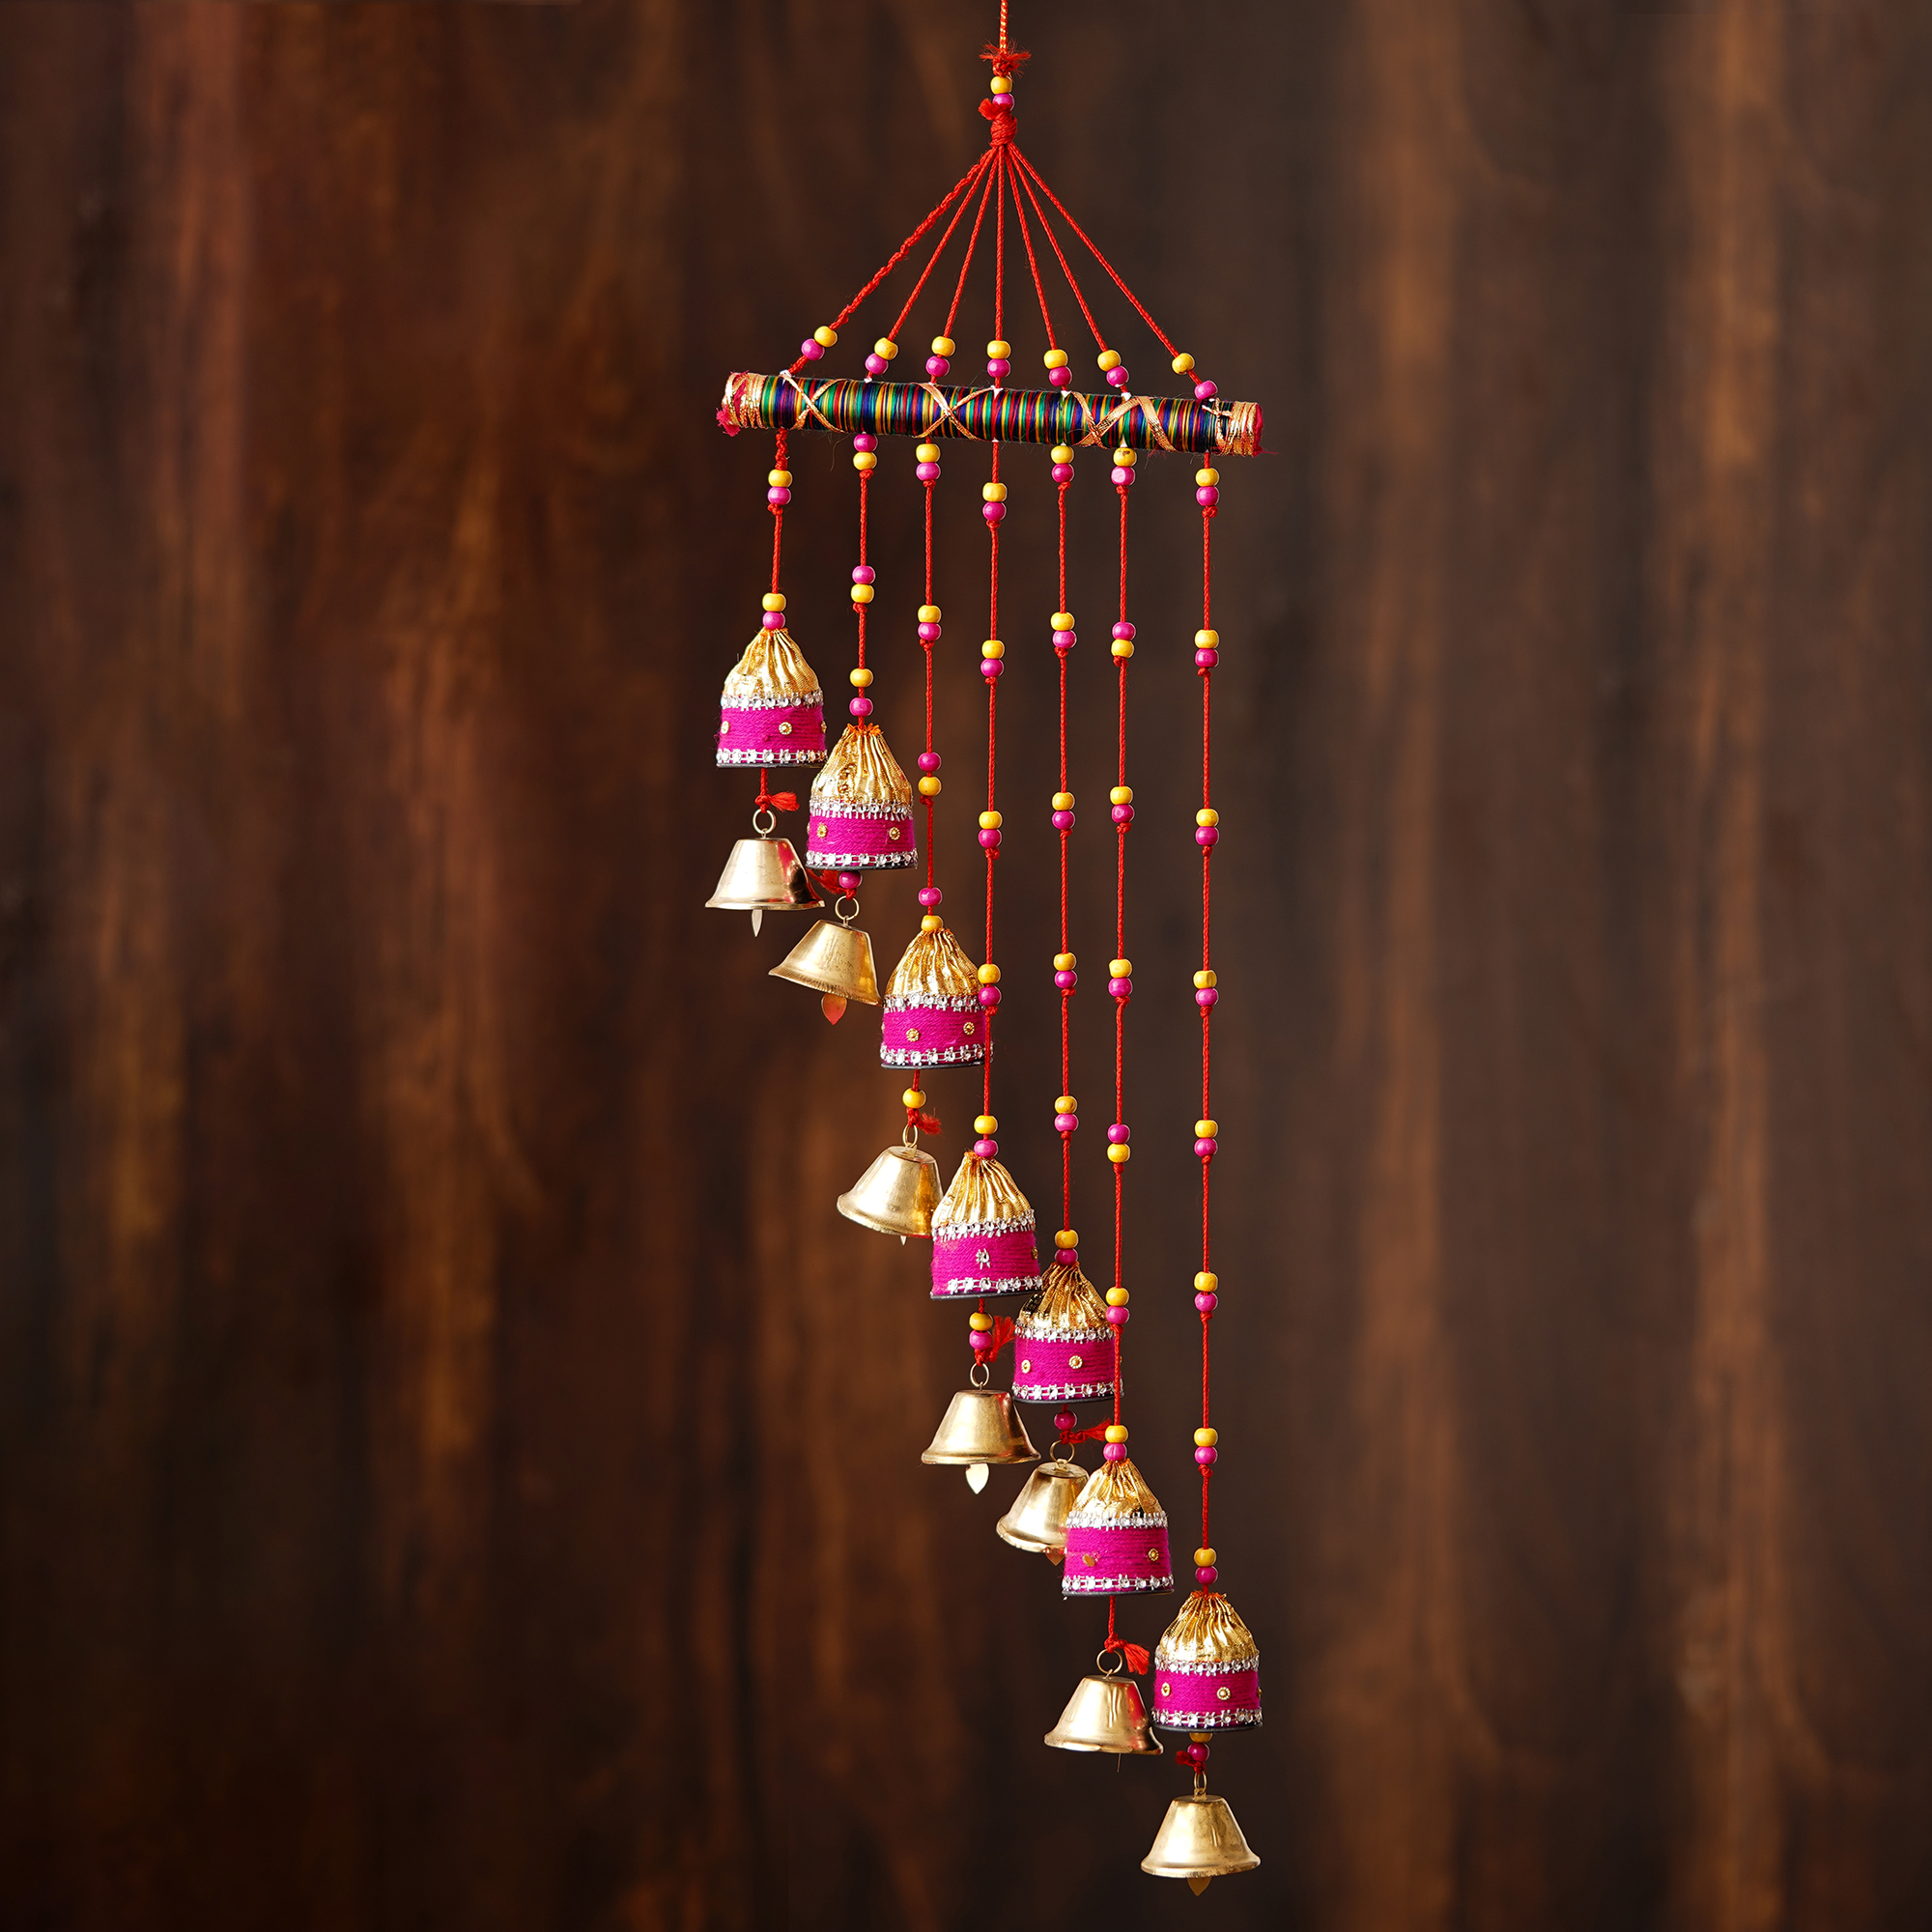 Handcrafted Decorative Colorful Lining Wall/Door/Window Hanging Bells Indian Home Decor